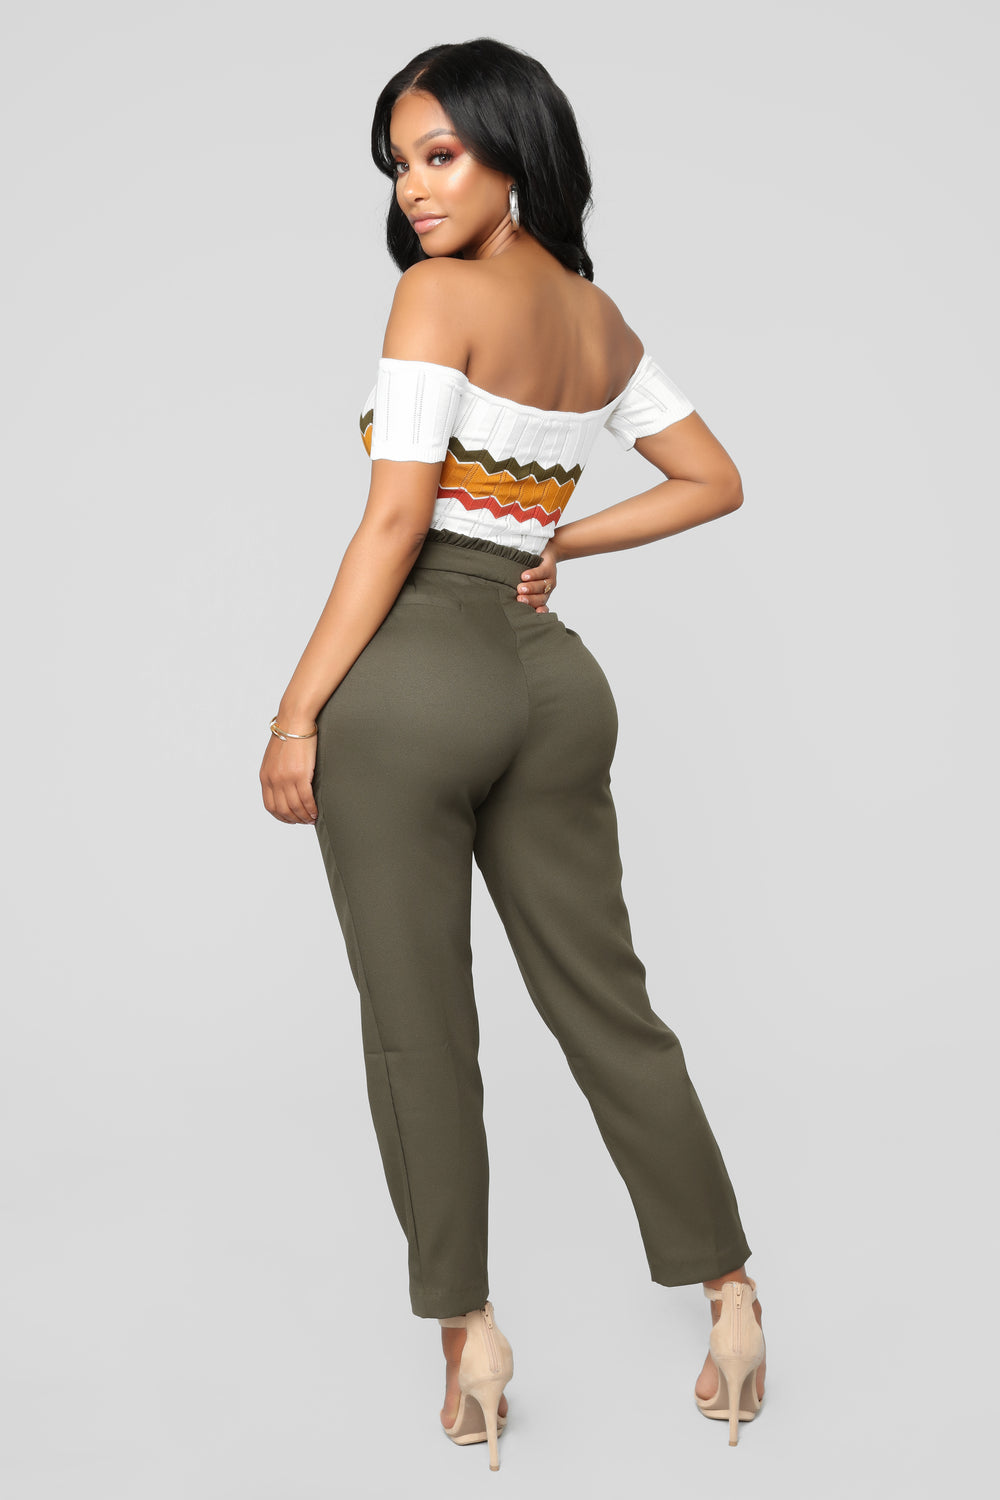 Head In The Clouds Ruffle Pants - Olive